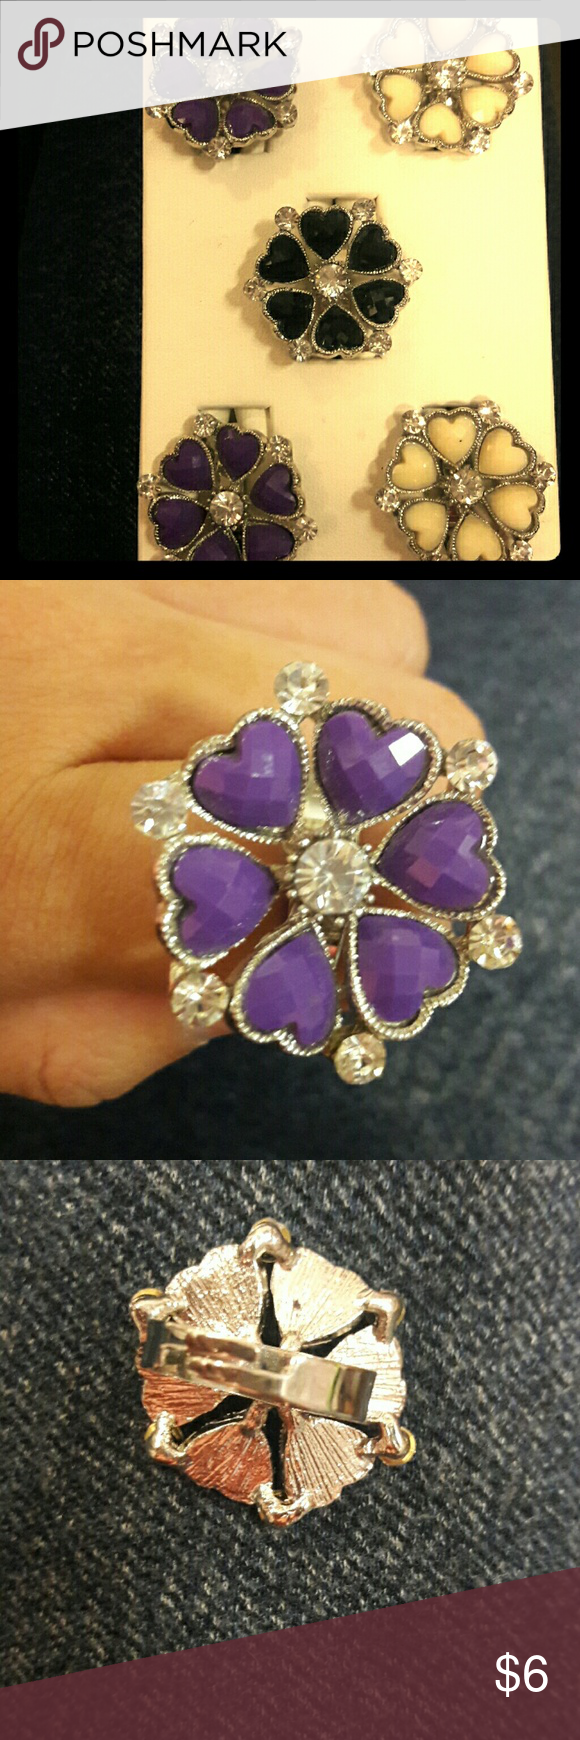 Heartpetal shape flower ring. Adgustable heart petal shape flower ring. Available in  Black White  Purple. Jewelry Rings